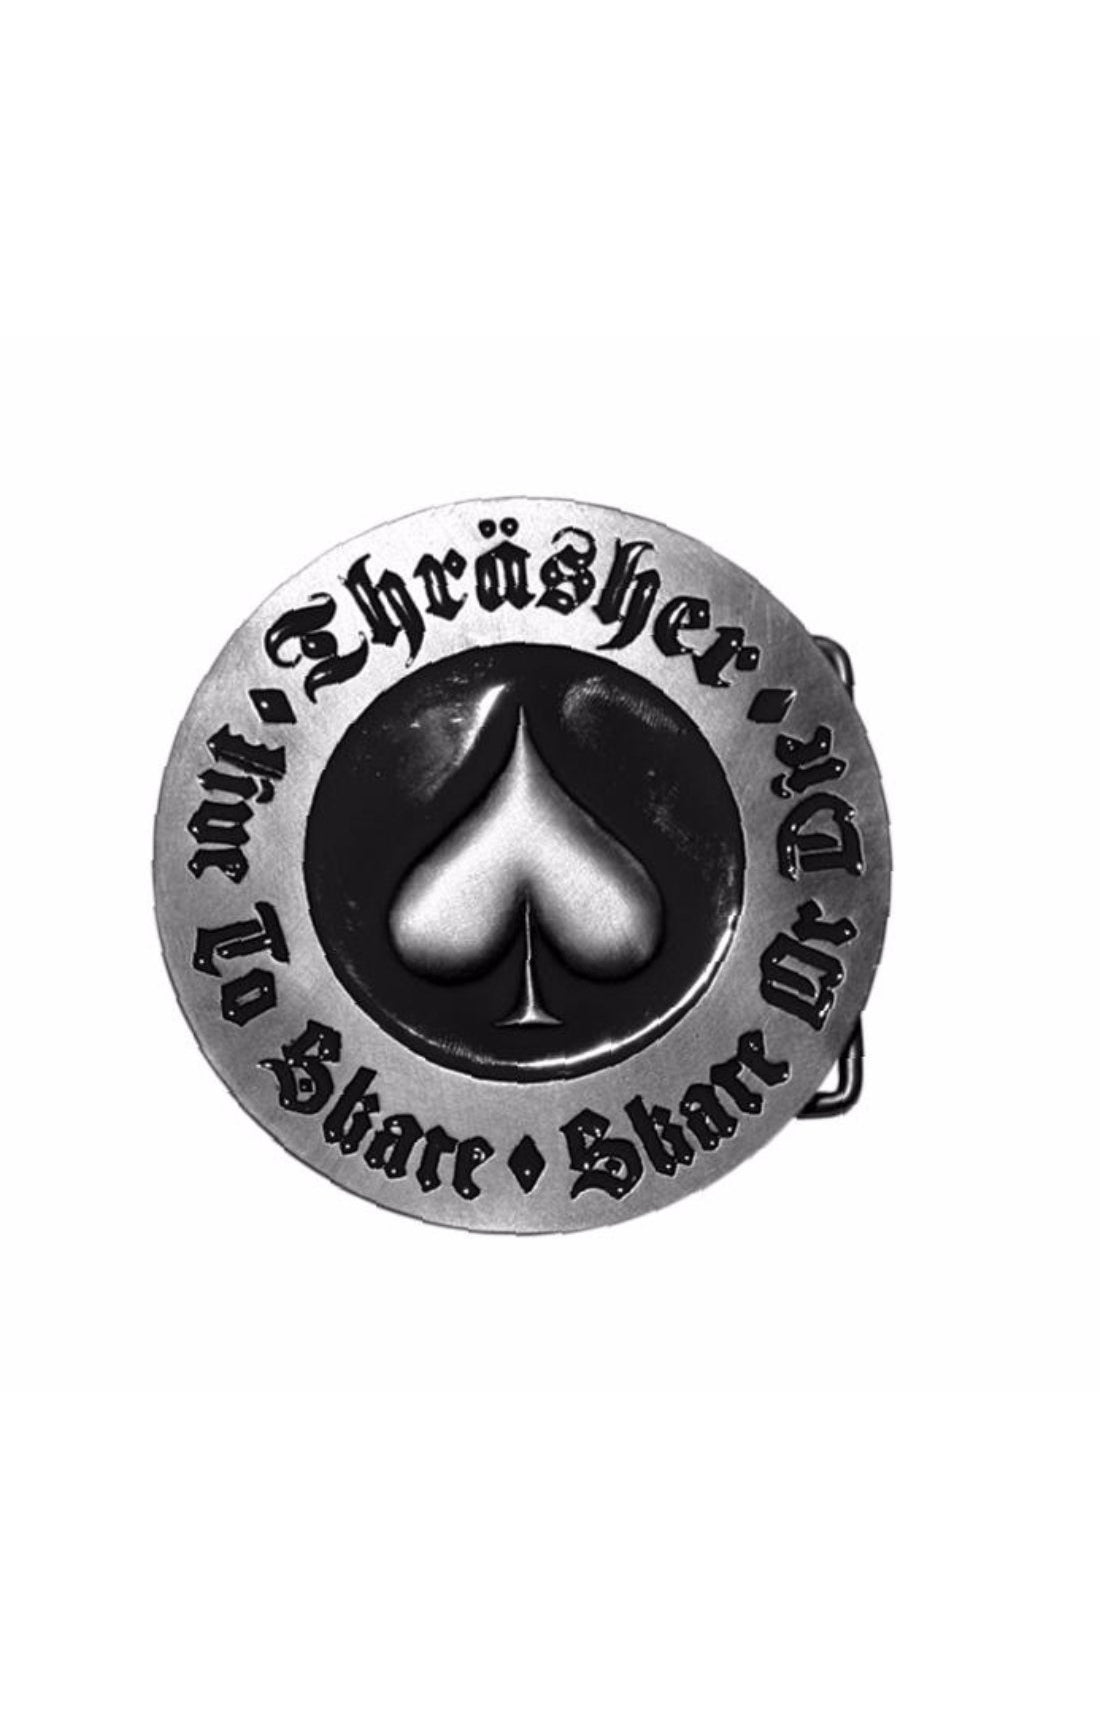 The Thrasher SKATE OR DIE Bottle Opener Buckle